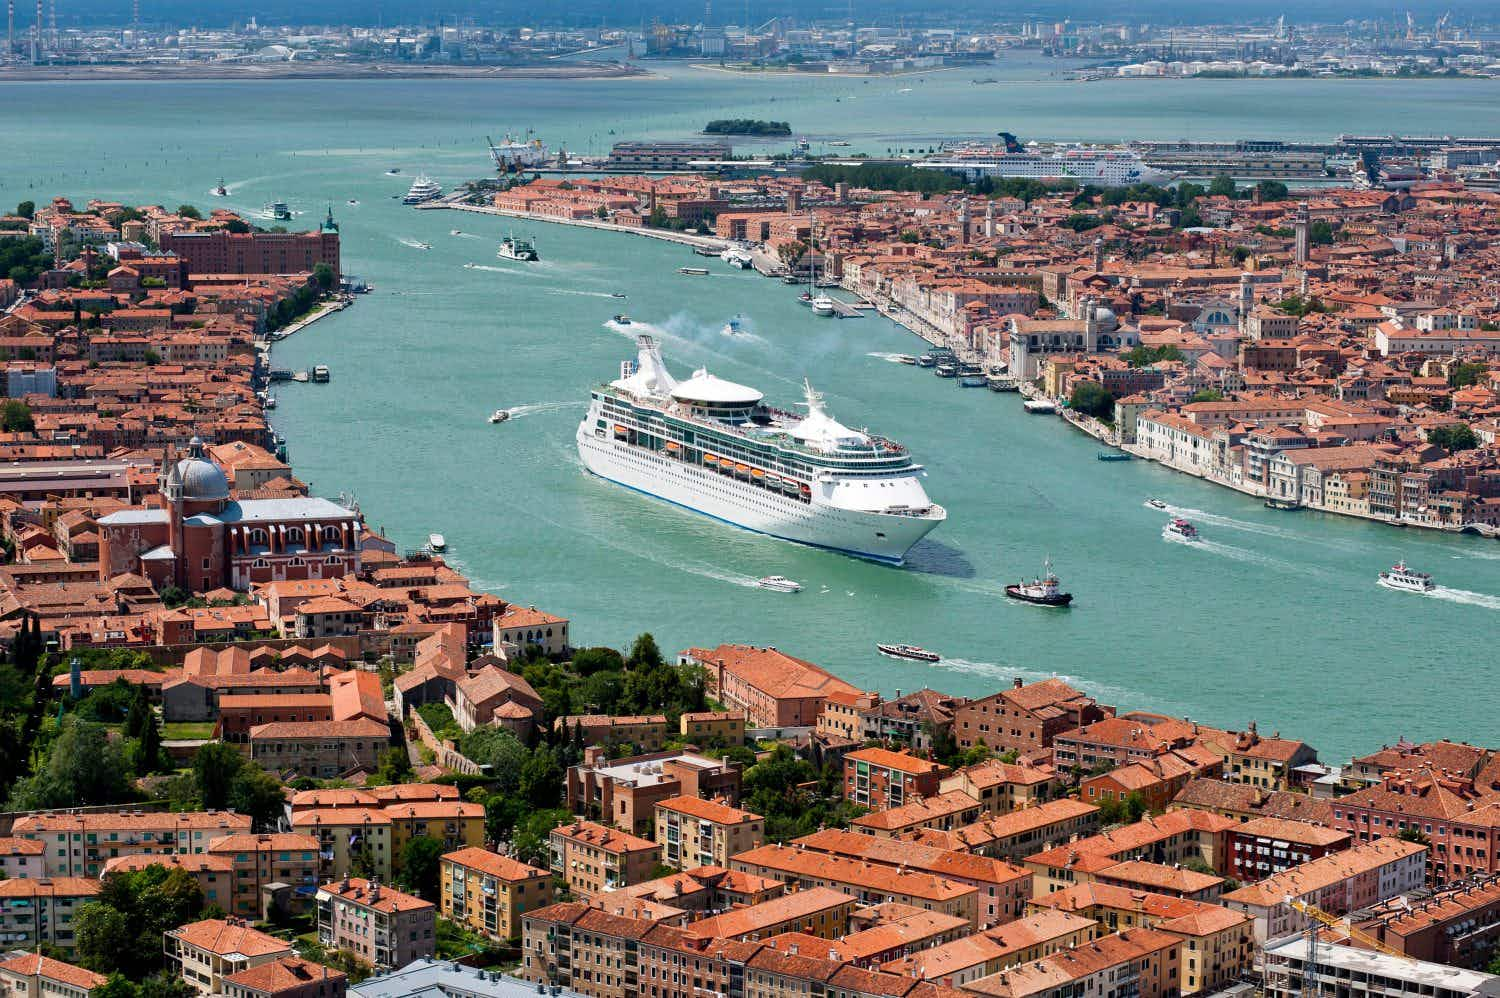 Should Venice be added to Unesco's endangered World Heritage list?